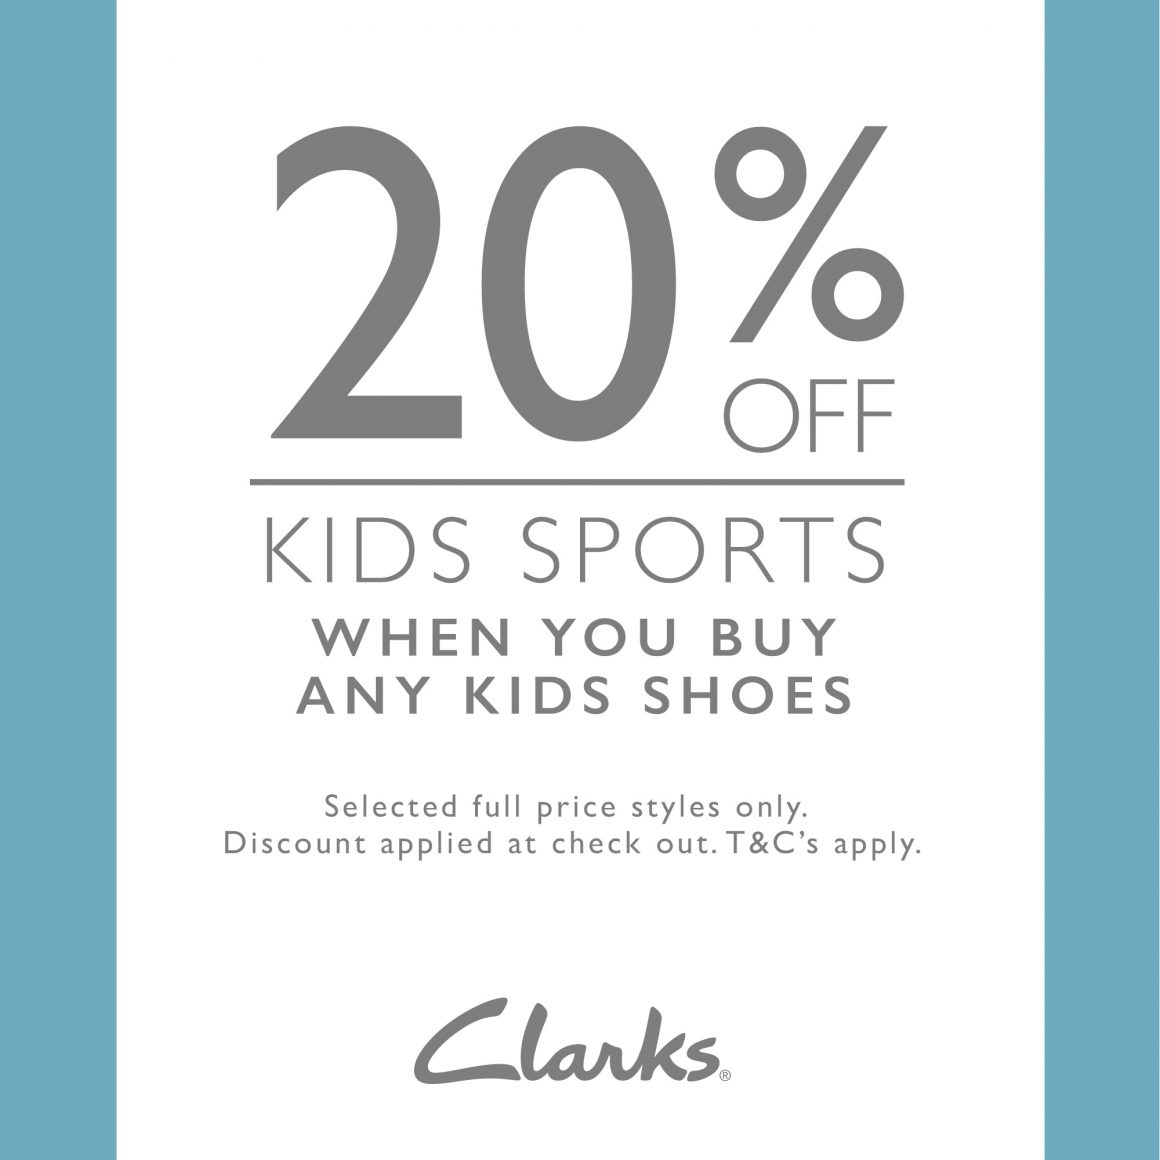 20% OFF KIDS SPORTS WHEN YOU BUY KIDS SHOES AT CLARKS